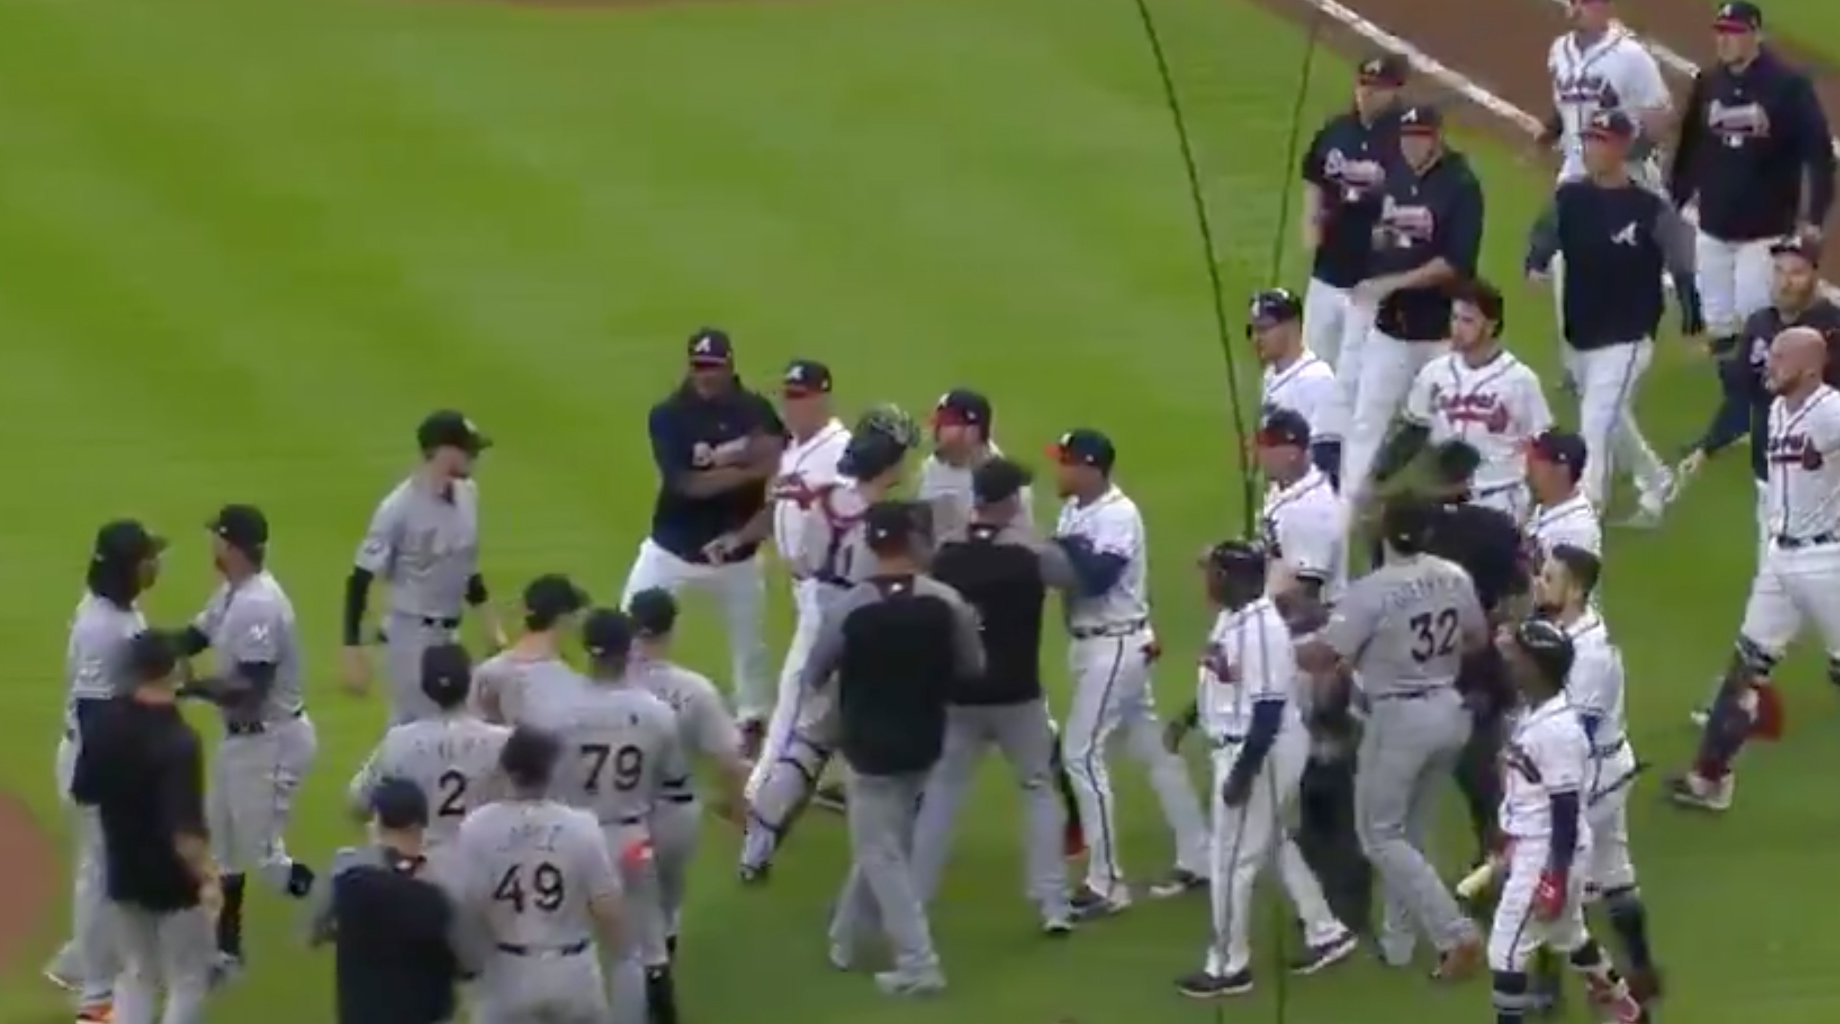 Acuna-hit-by-pitch-braves